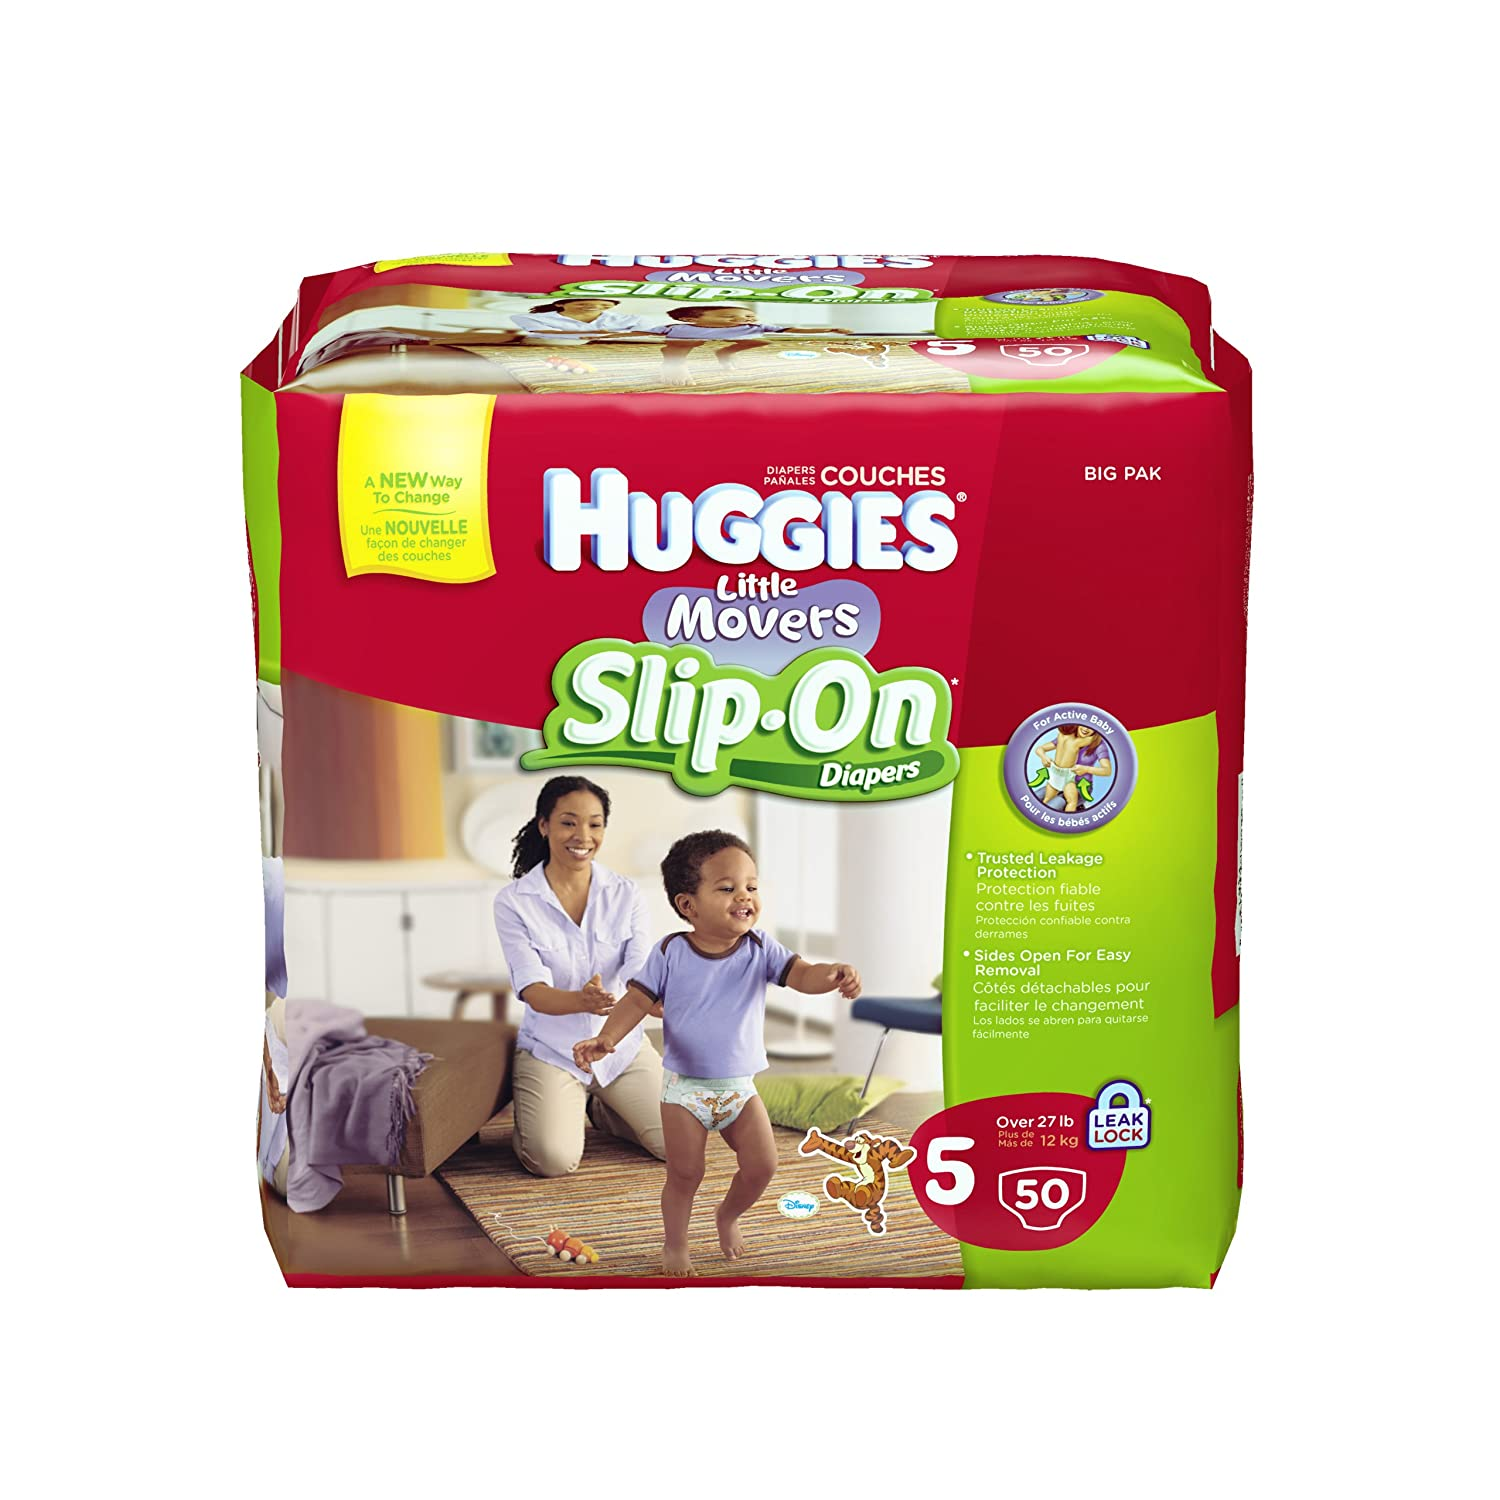 Huggies pull ups diapers car tuning - Amazon Com Huggies Little Movers Slip On Diapers Step 5 50 Count Pack Of 2 Health Personal Care